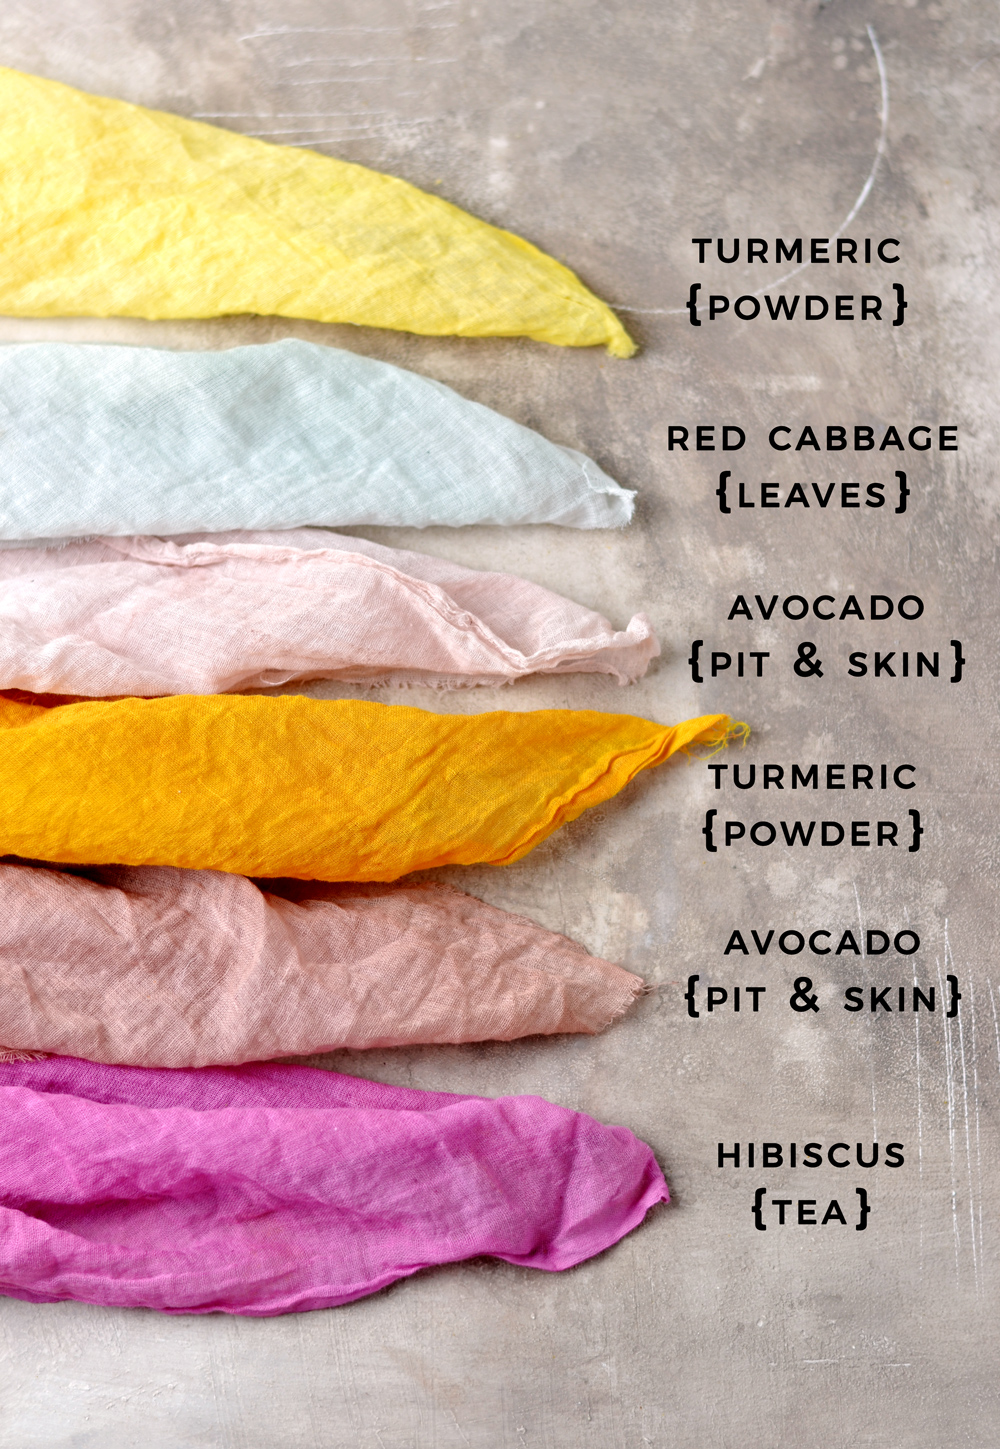 How To Make Natural Dyes For Fabric A Few Beautiful And Colorful Experiments Dreams Factory